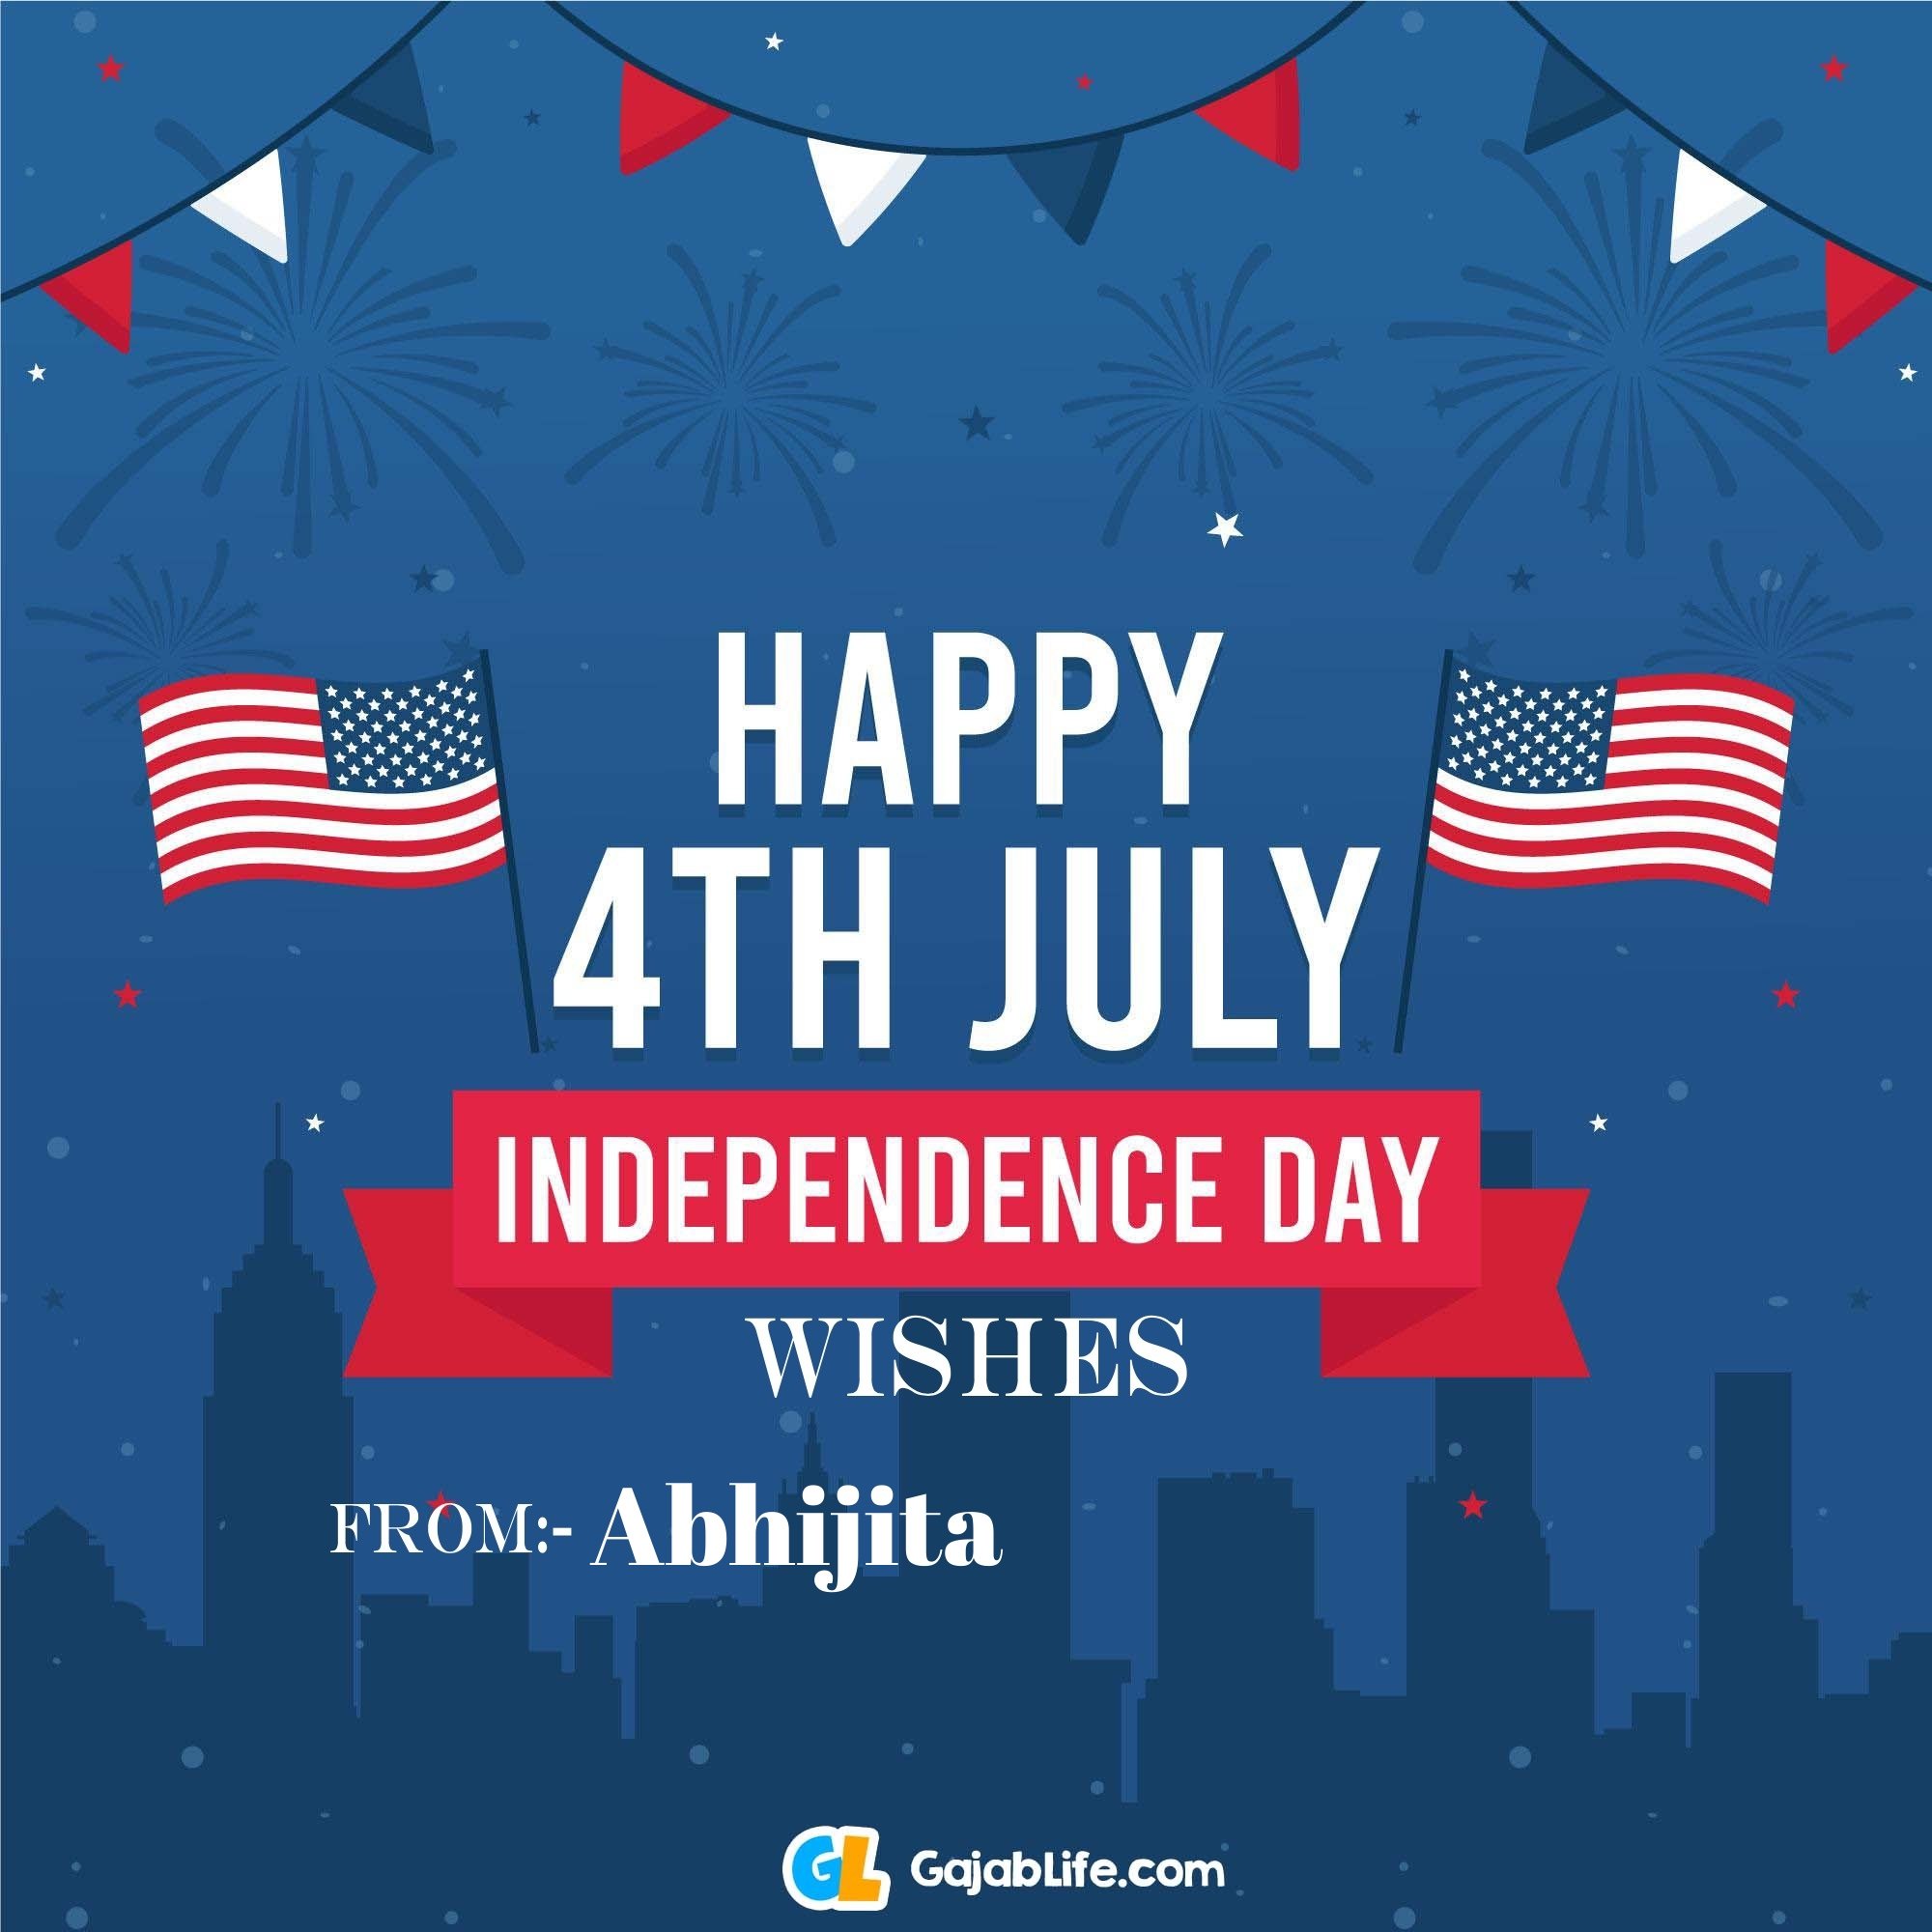 Abhijita happy independence day united states of america images